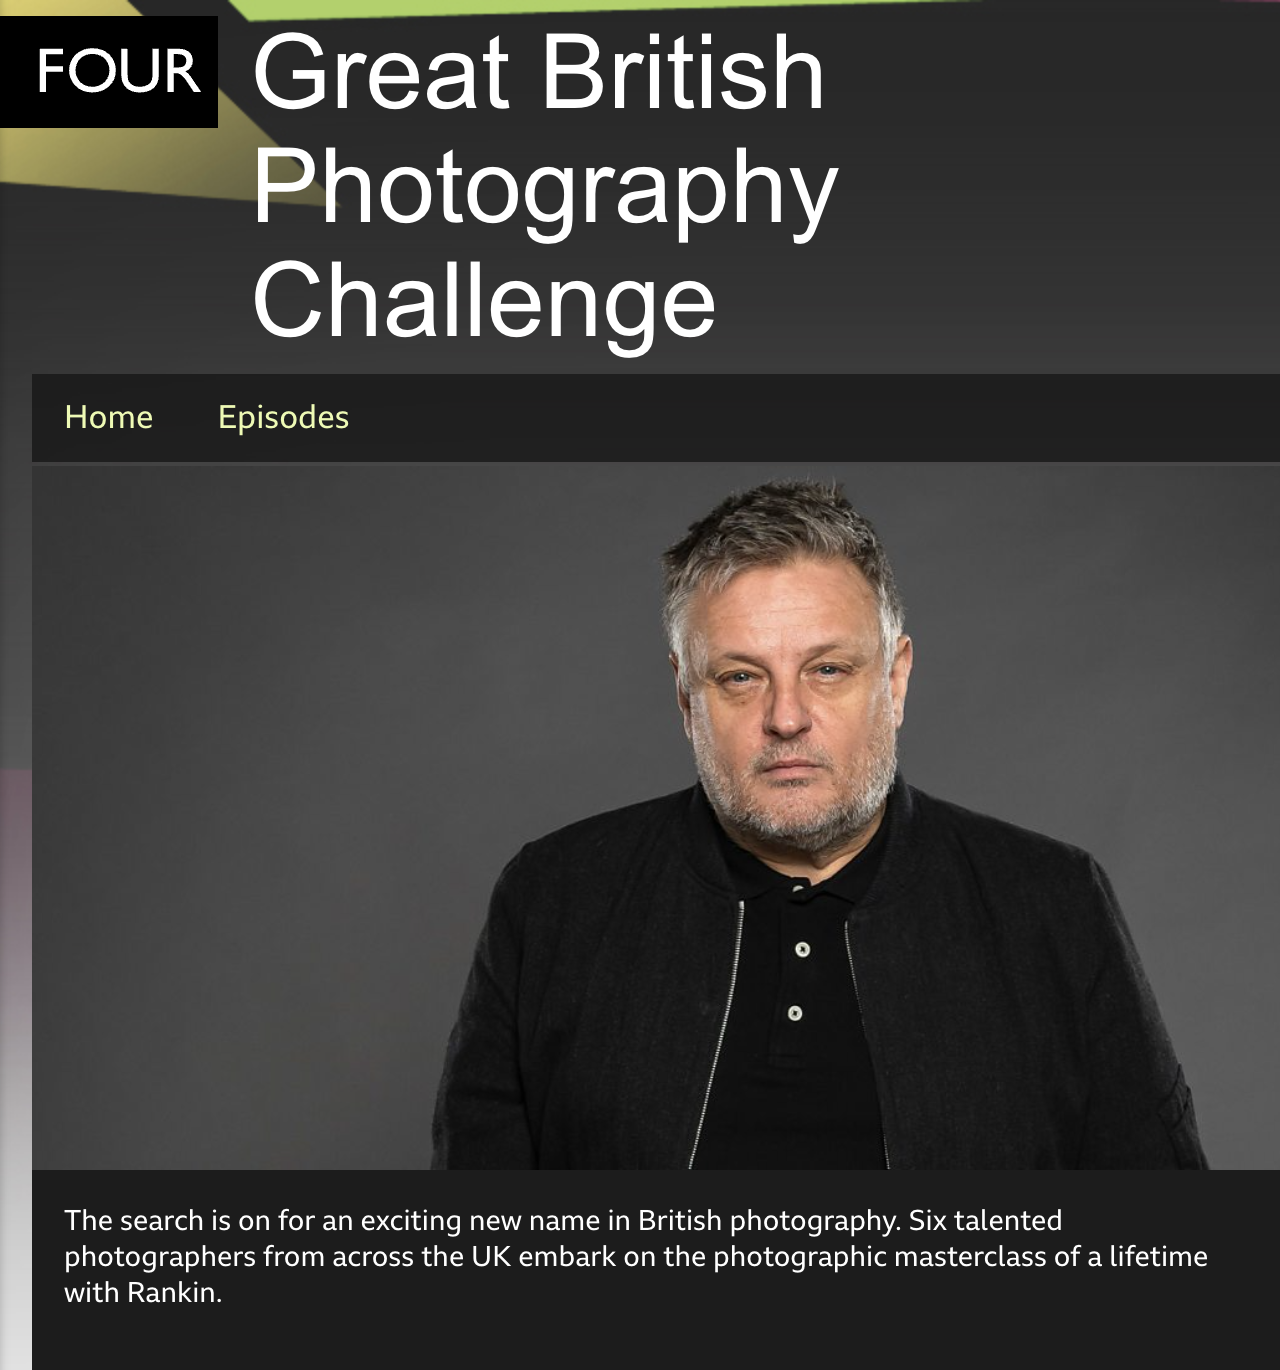 BBC programme page for Great British Photography Challenge with photo of photographer Rankin